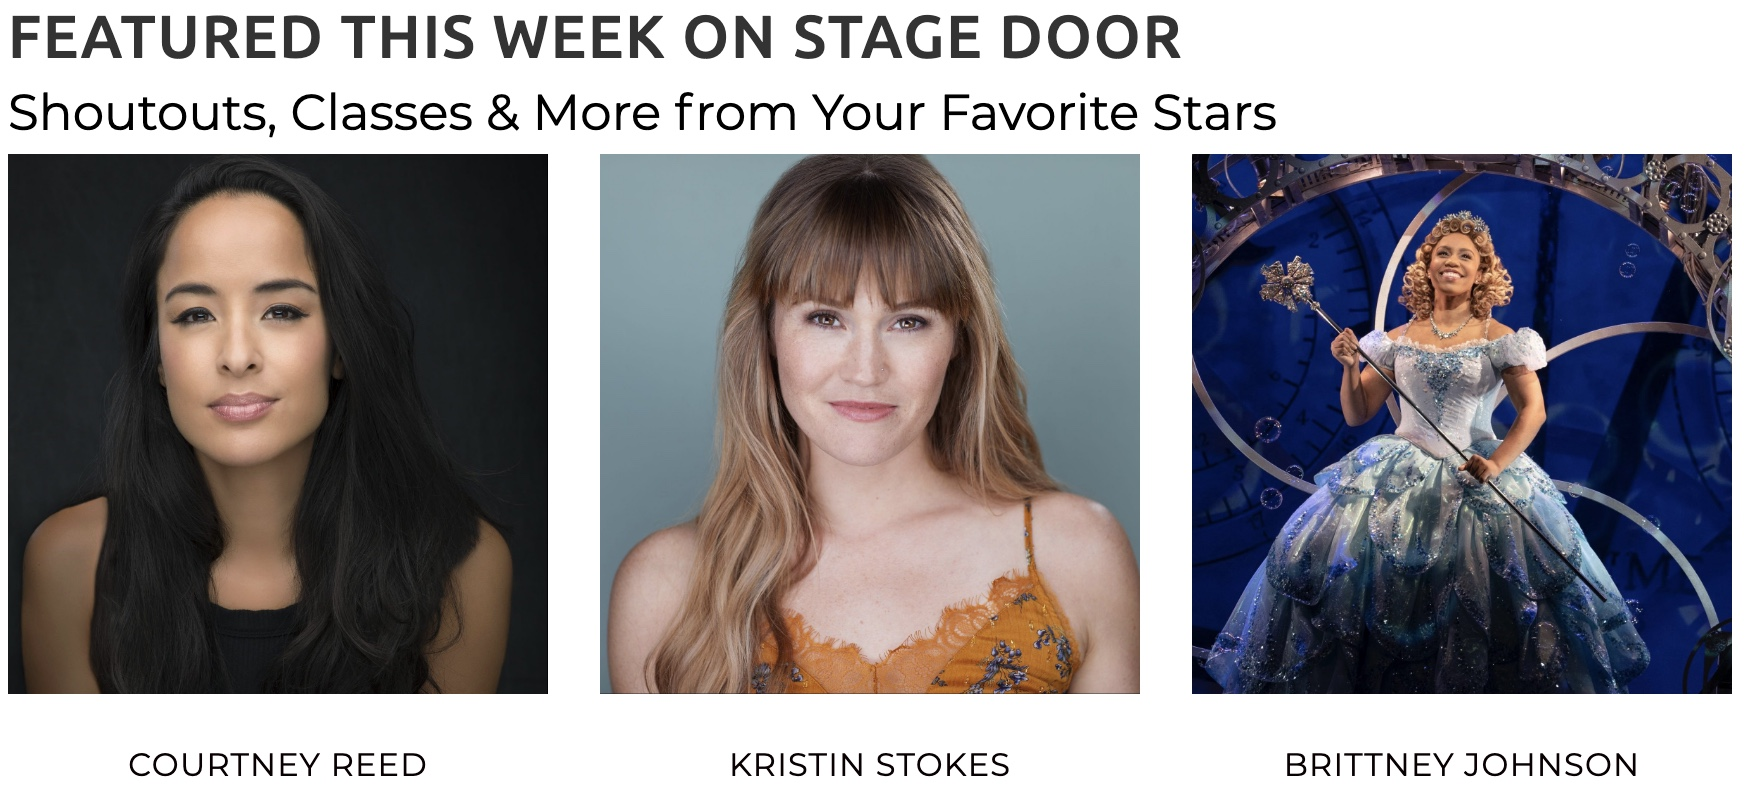 This Week on Stage Door